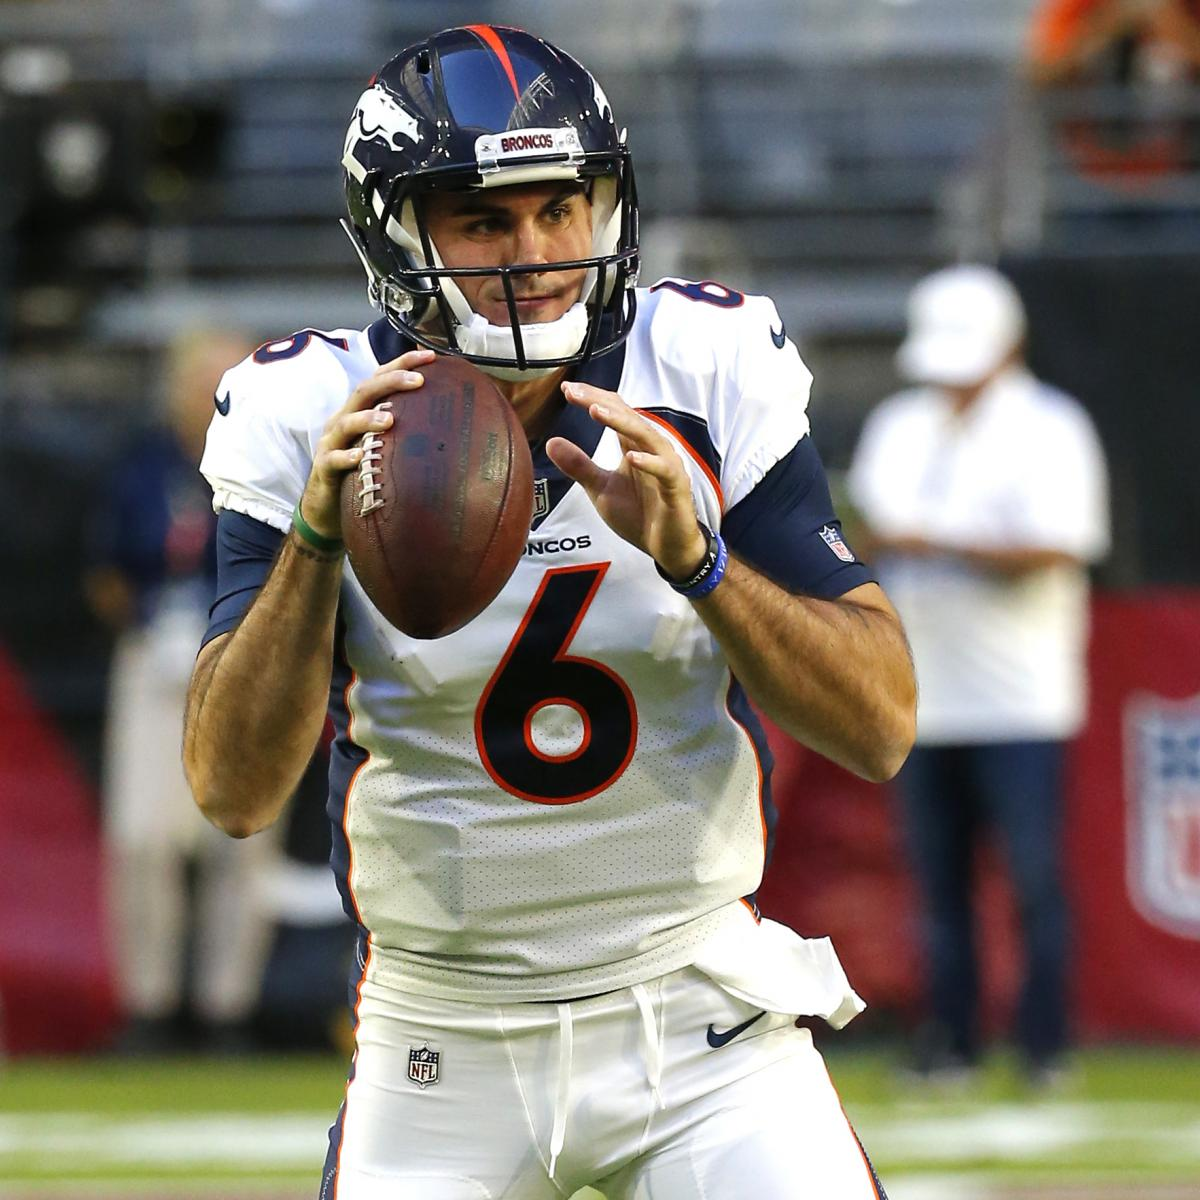 Report: Ex-Broncos QB Chad Kelly Signs With Colts